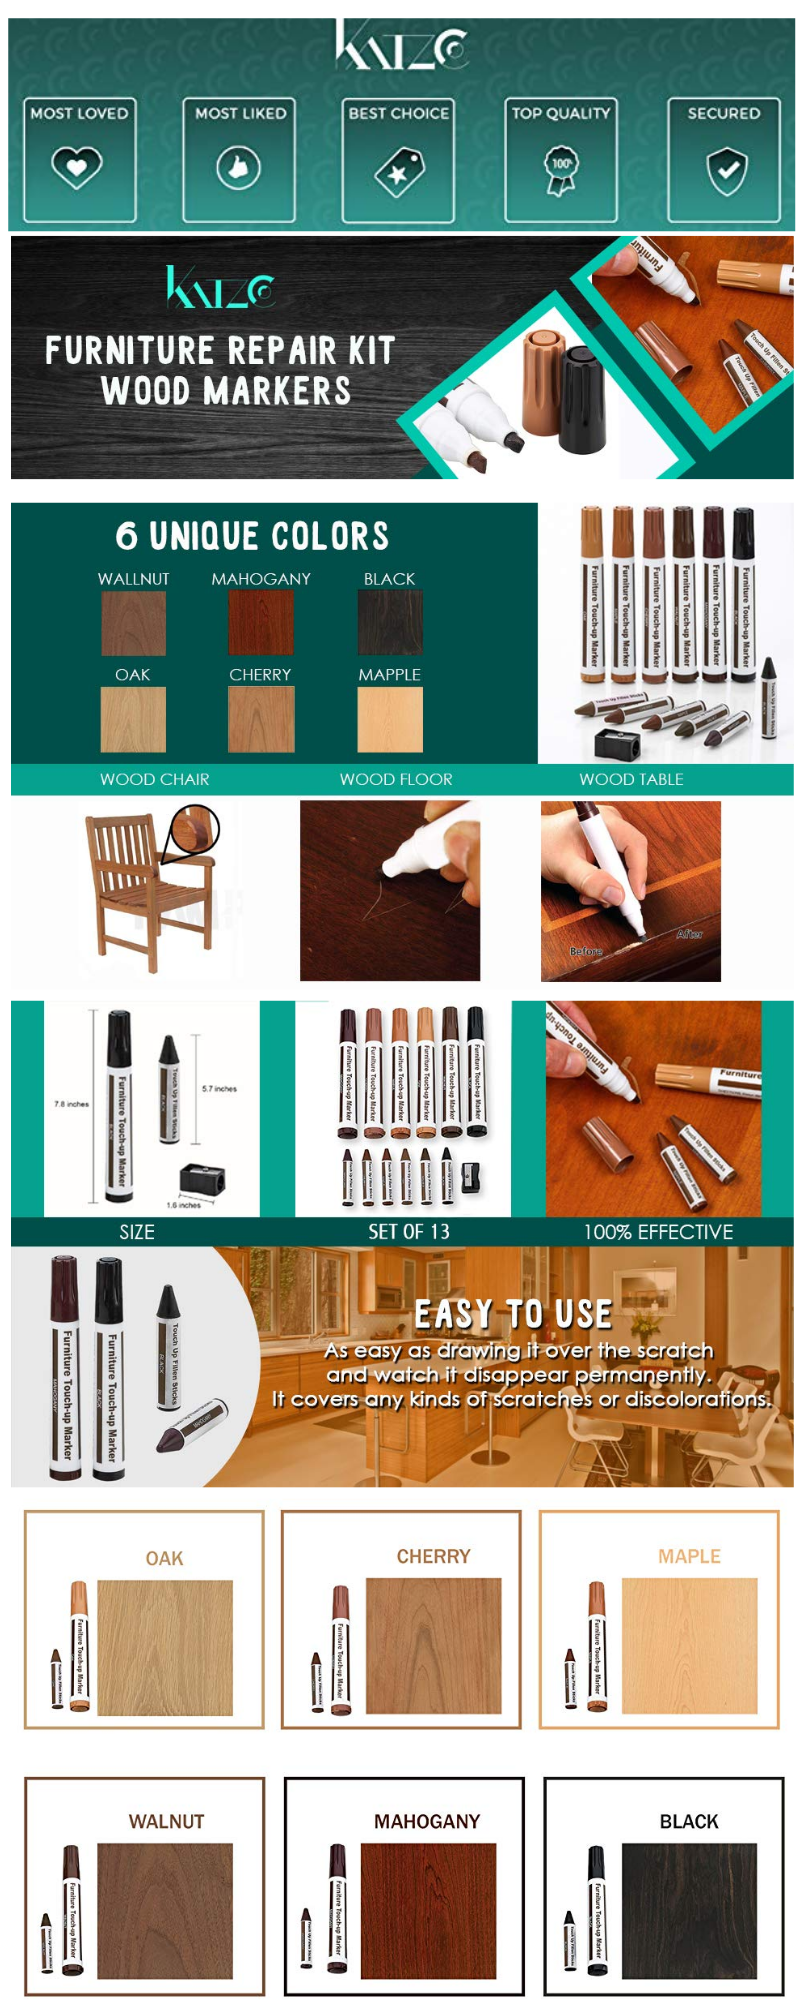 Furniture Repair Kit Wood Markers Set Of 13 Markers And Wax Sticks With Sharpener Kit For Stains Scratches Woo Wood Markers Furniture Repair Markers Set